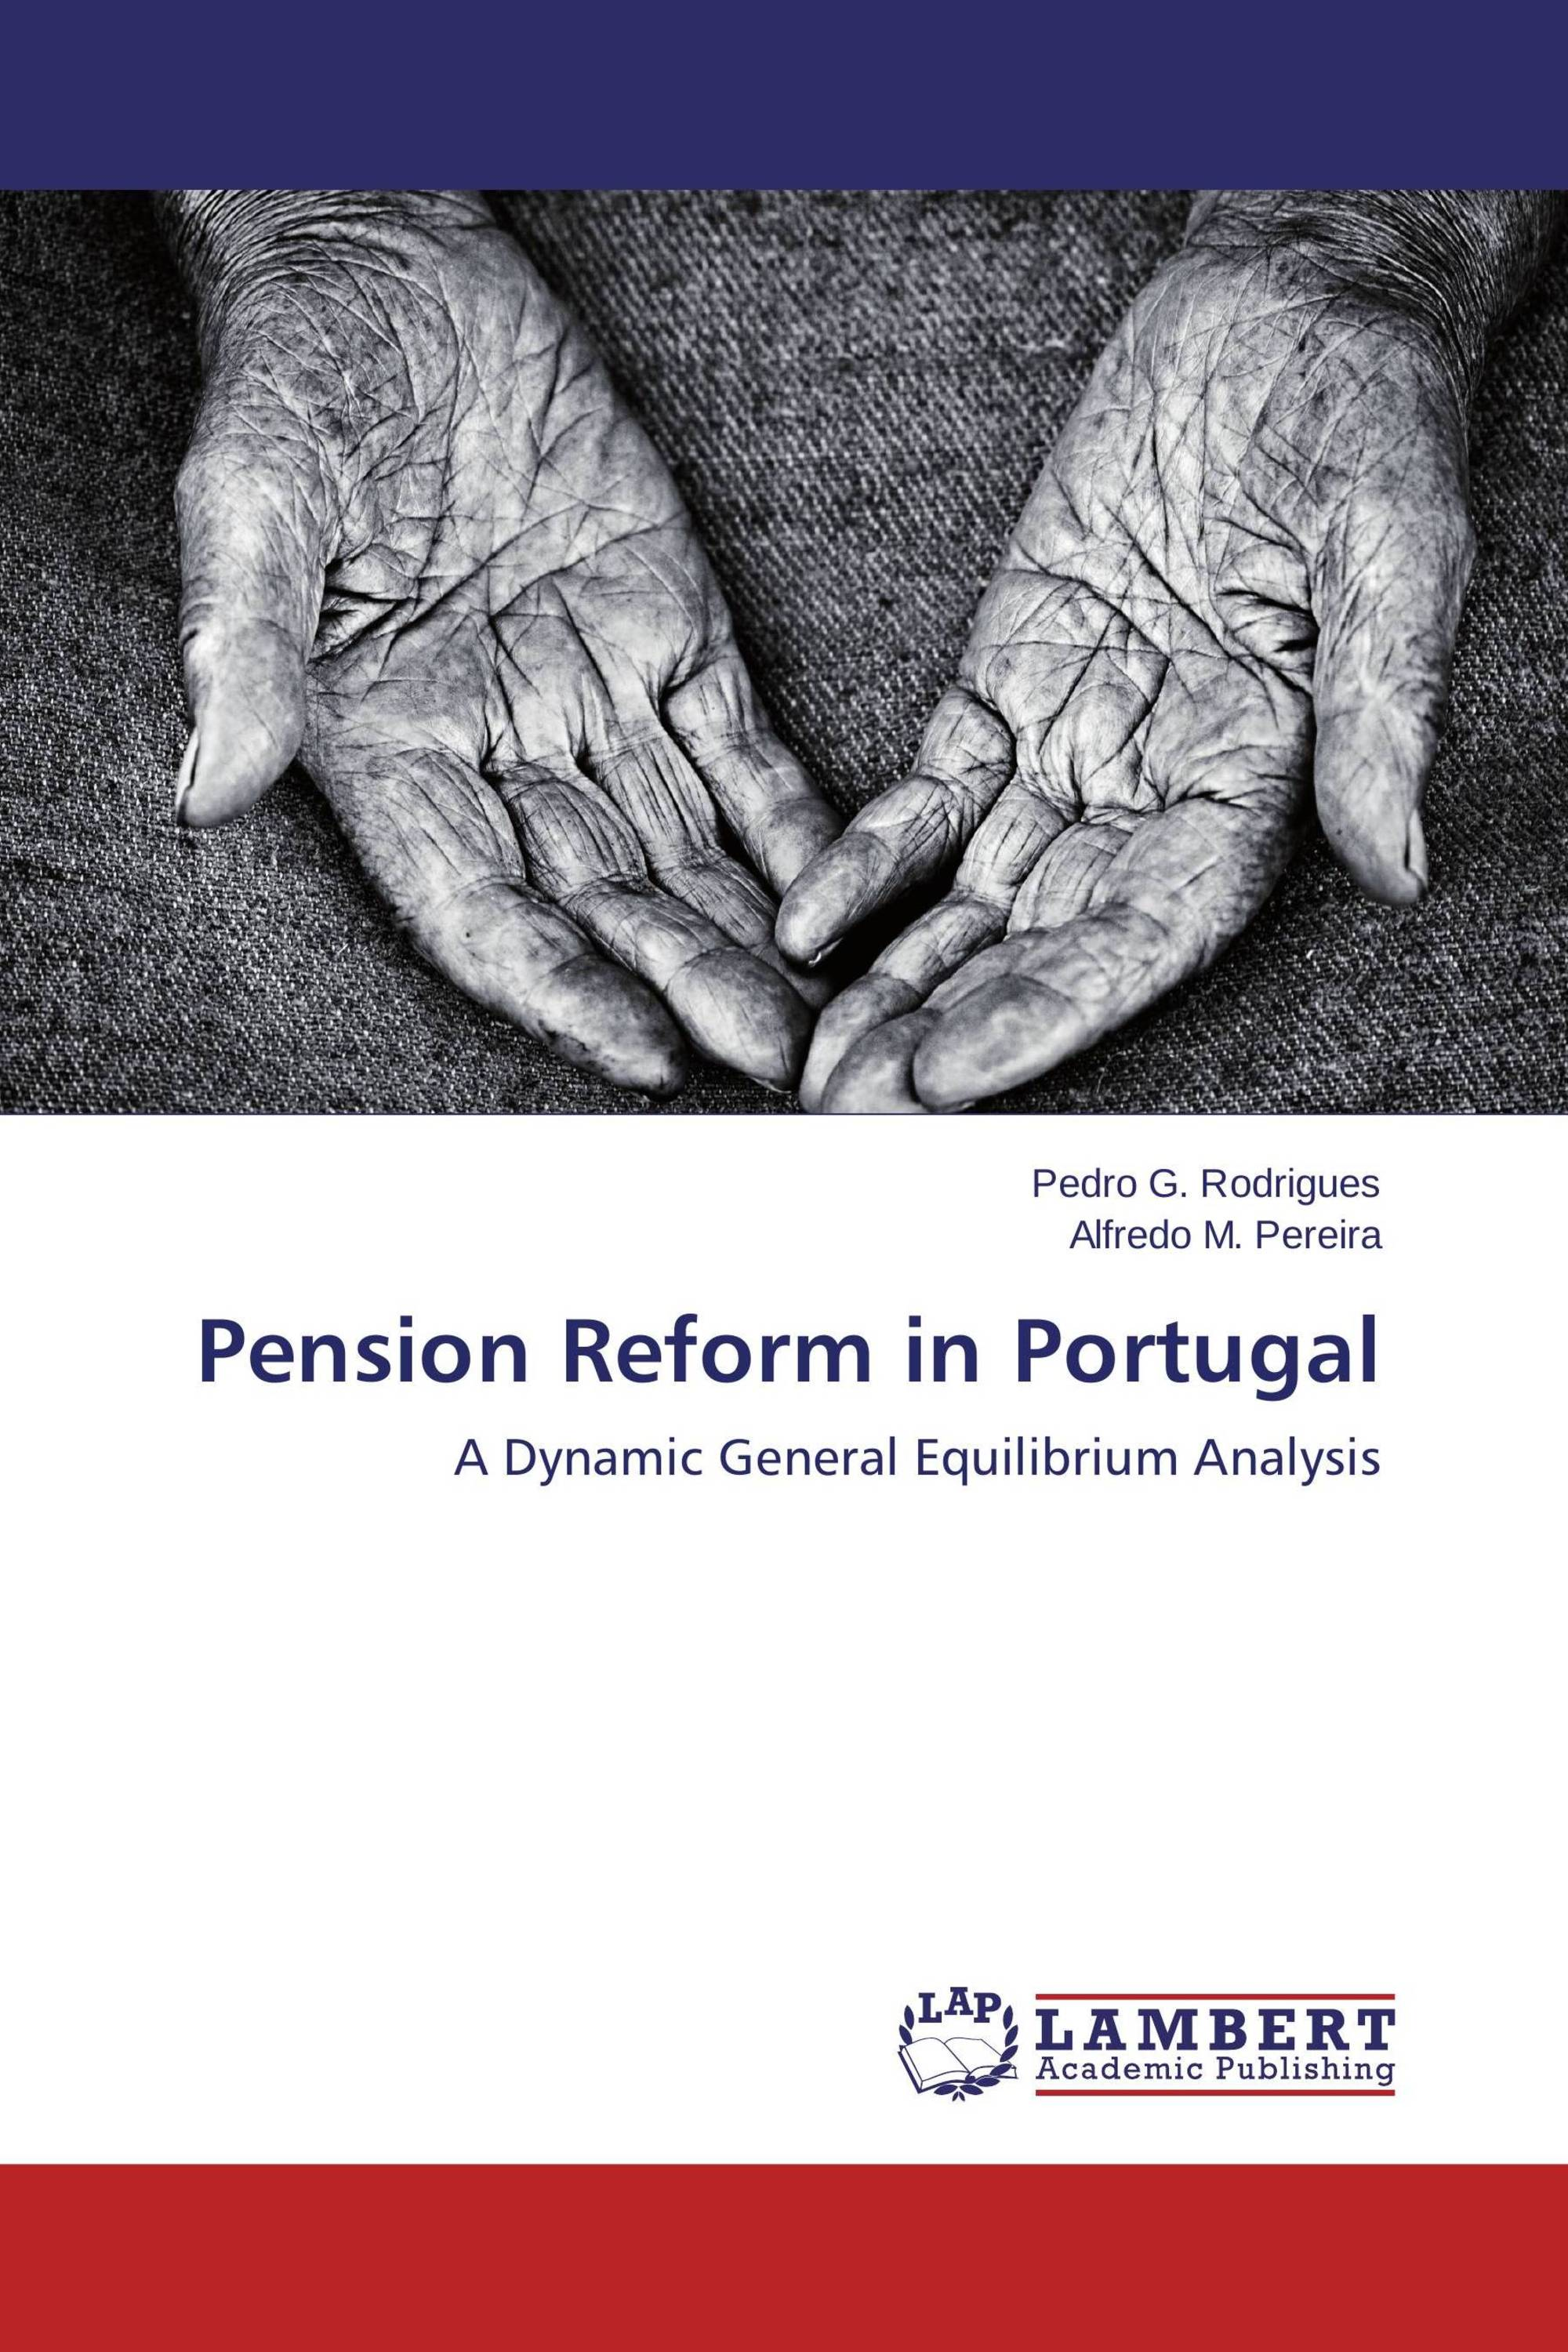 Pension Reform in Portugal